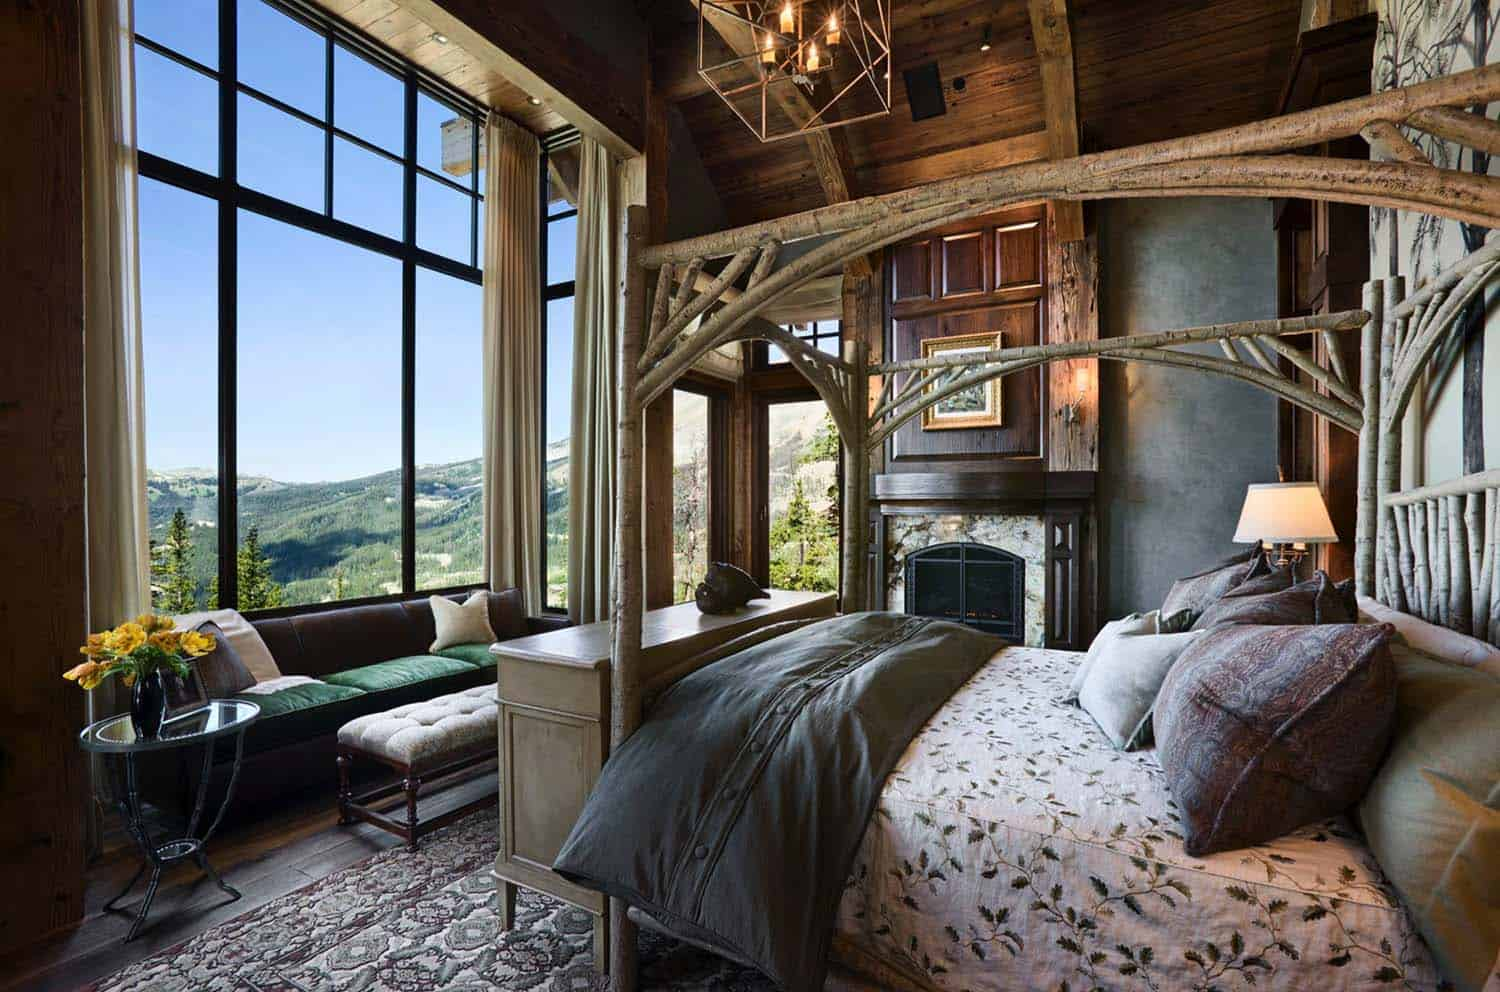 Amazing Cozy-Rustic Bedrooms-31-1 Kindesign